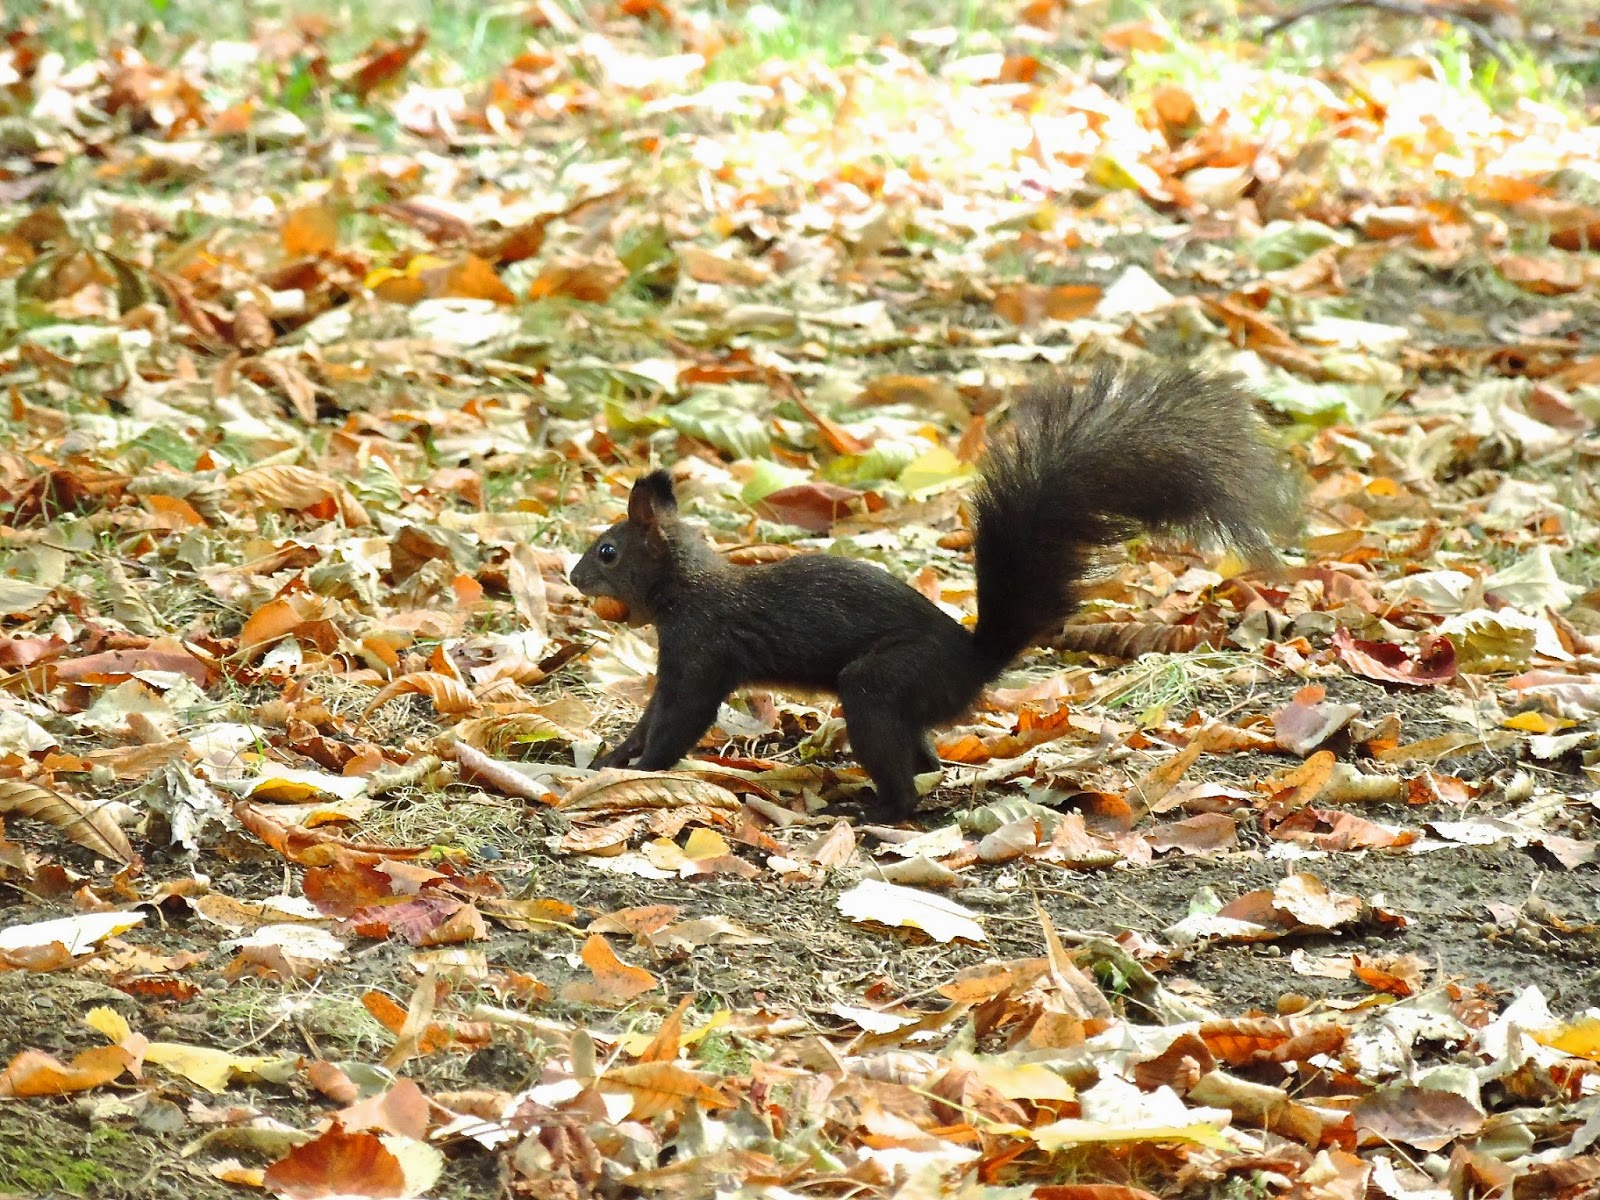 Squirel with a nut  in mouth